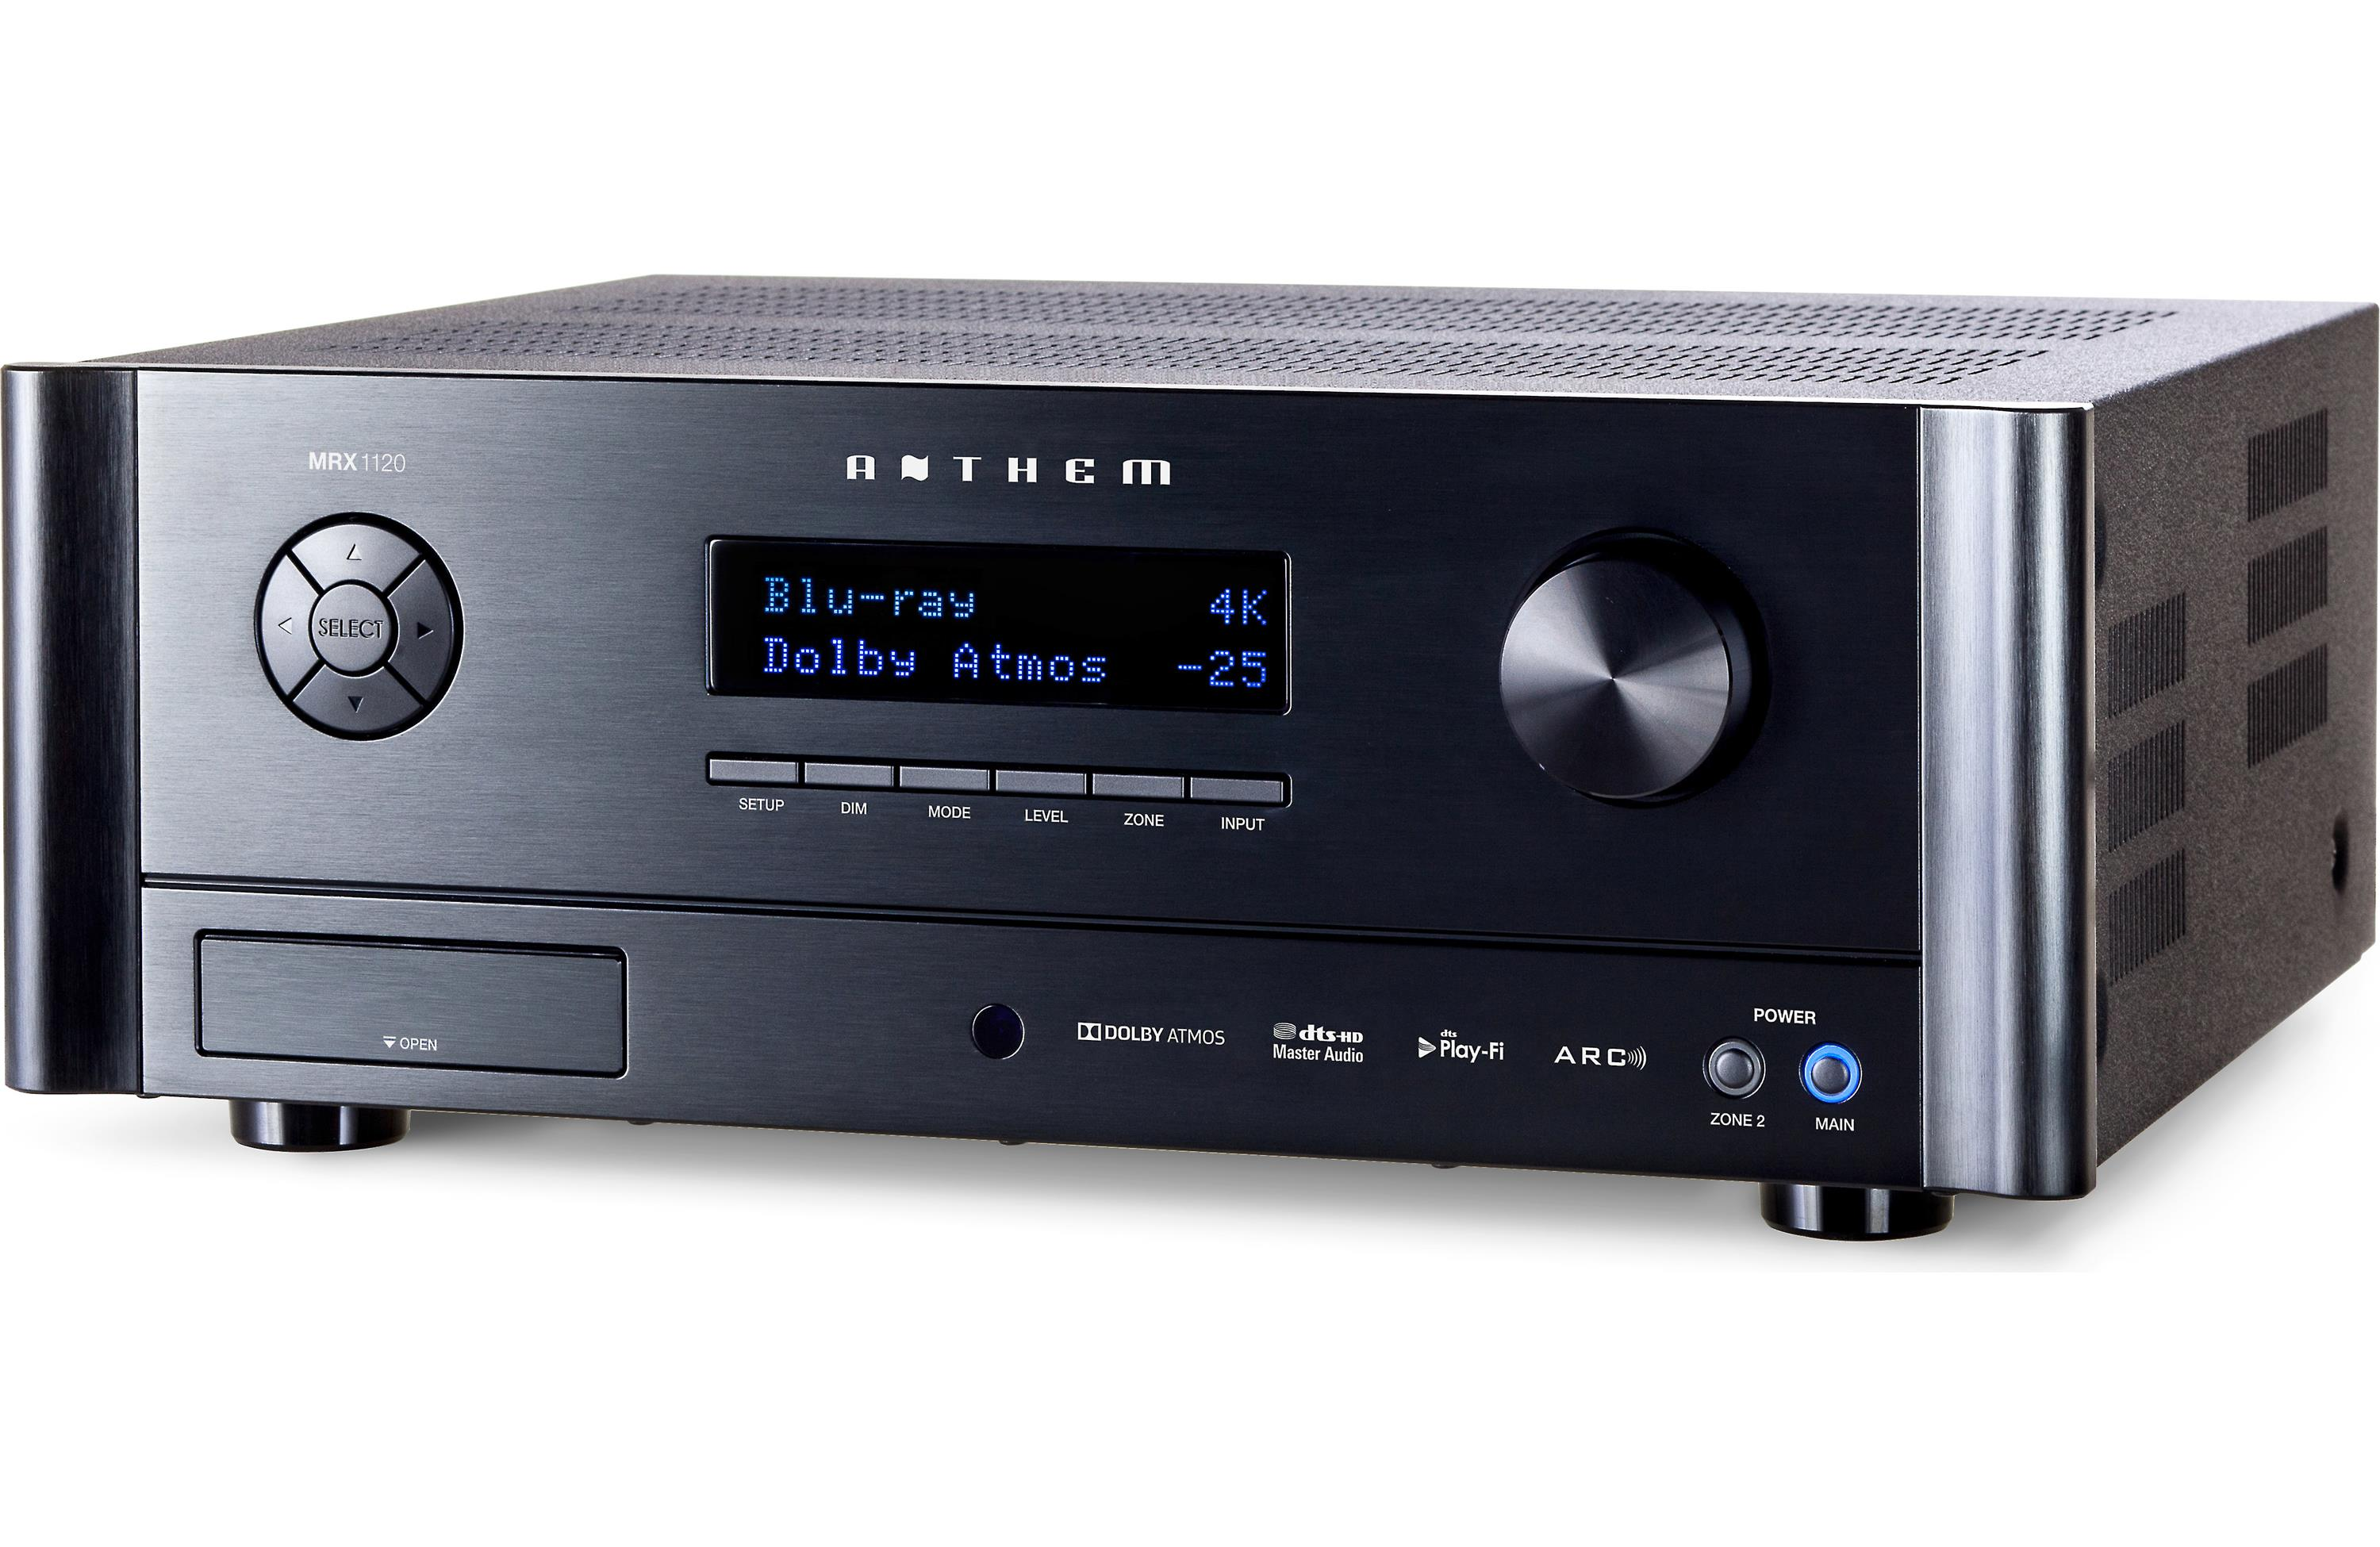 Anthem Mrx 1120 11 2 Channel Home Theater Receiver W